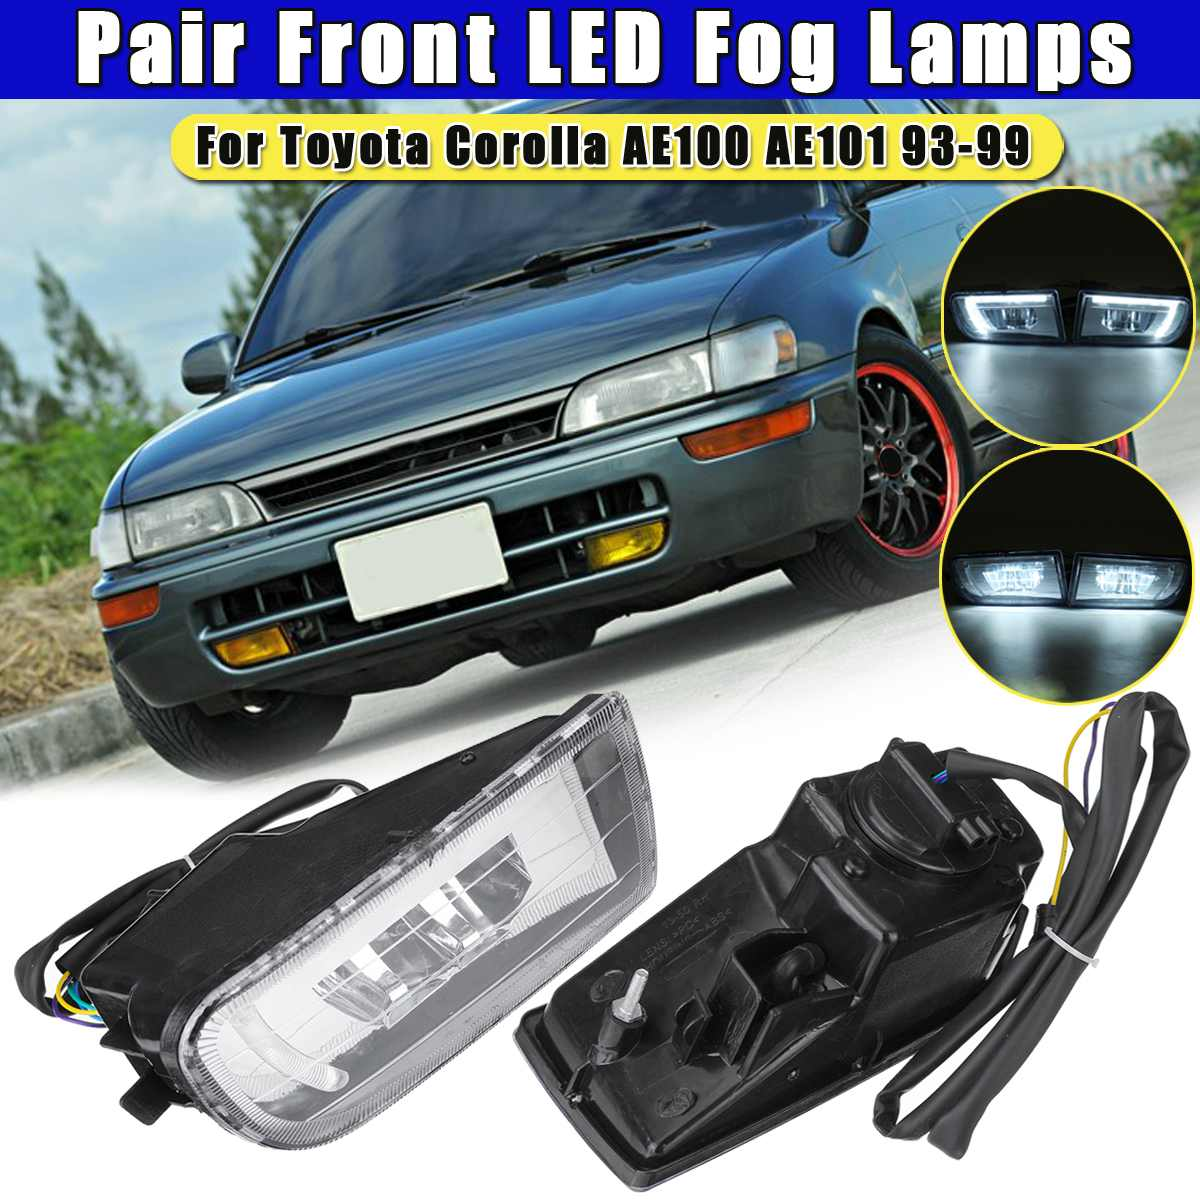 Pair Super Bright Fog Light For Toyota Corolla AE100 AE101 1993 1994 1995 1996 1997 1998 1999 Led Fog Lights Fog Lamp Assembly